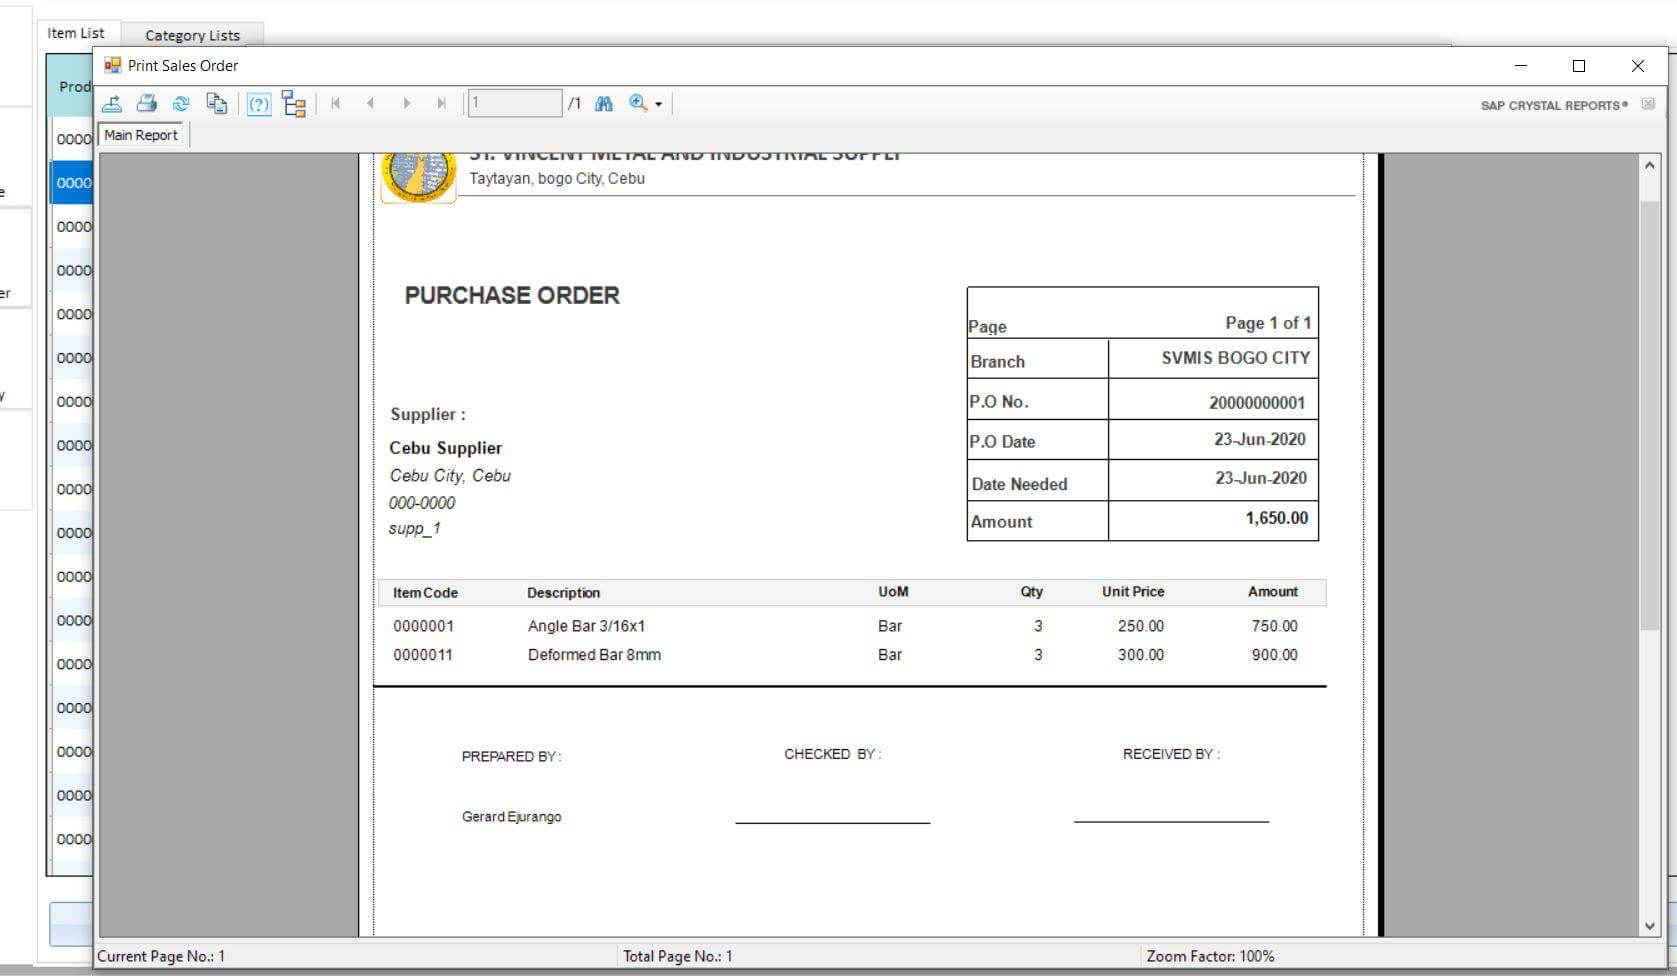 Sales and Inventory System in VB.Net Purchase Order Report